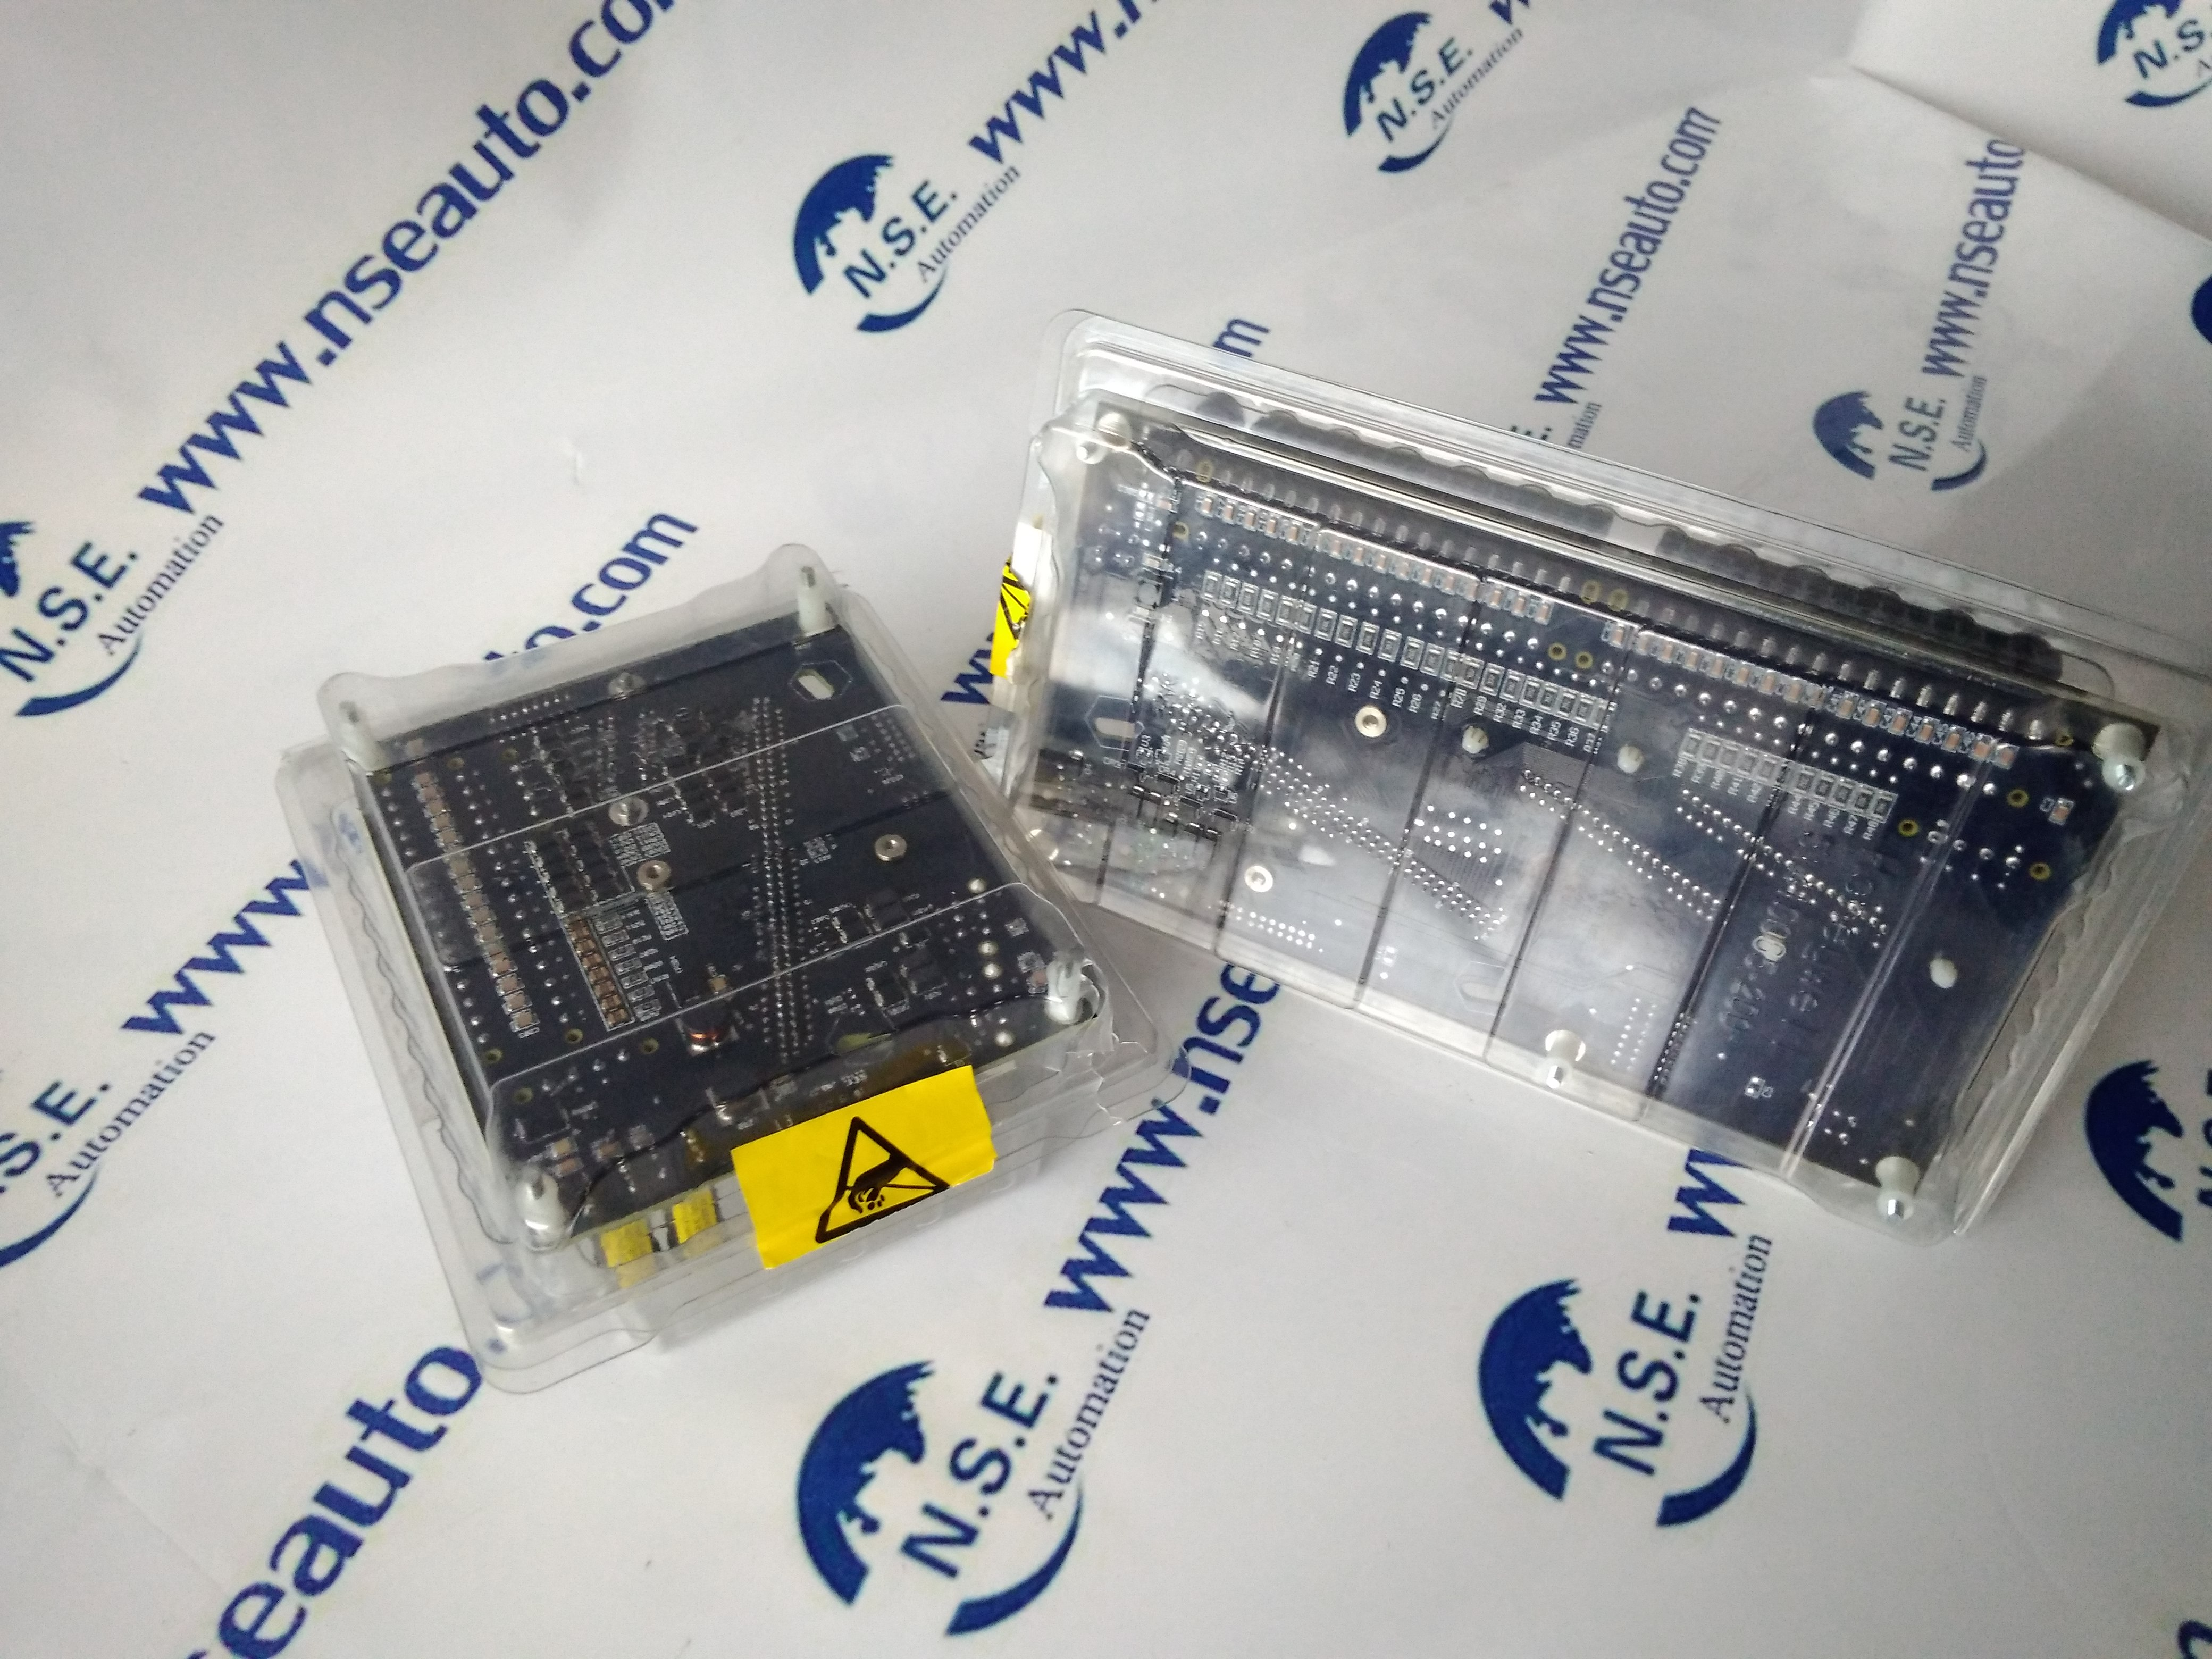 HONEYWELL 51304337-150 NEW PLC DCS TSI SYSTME SPARE PARTS IN